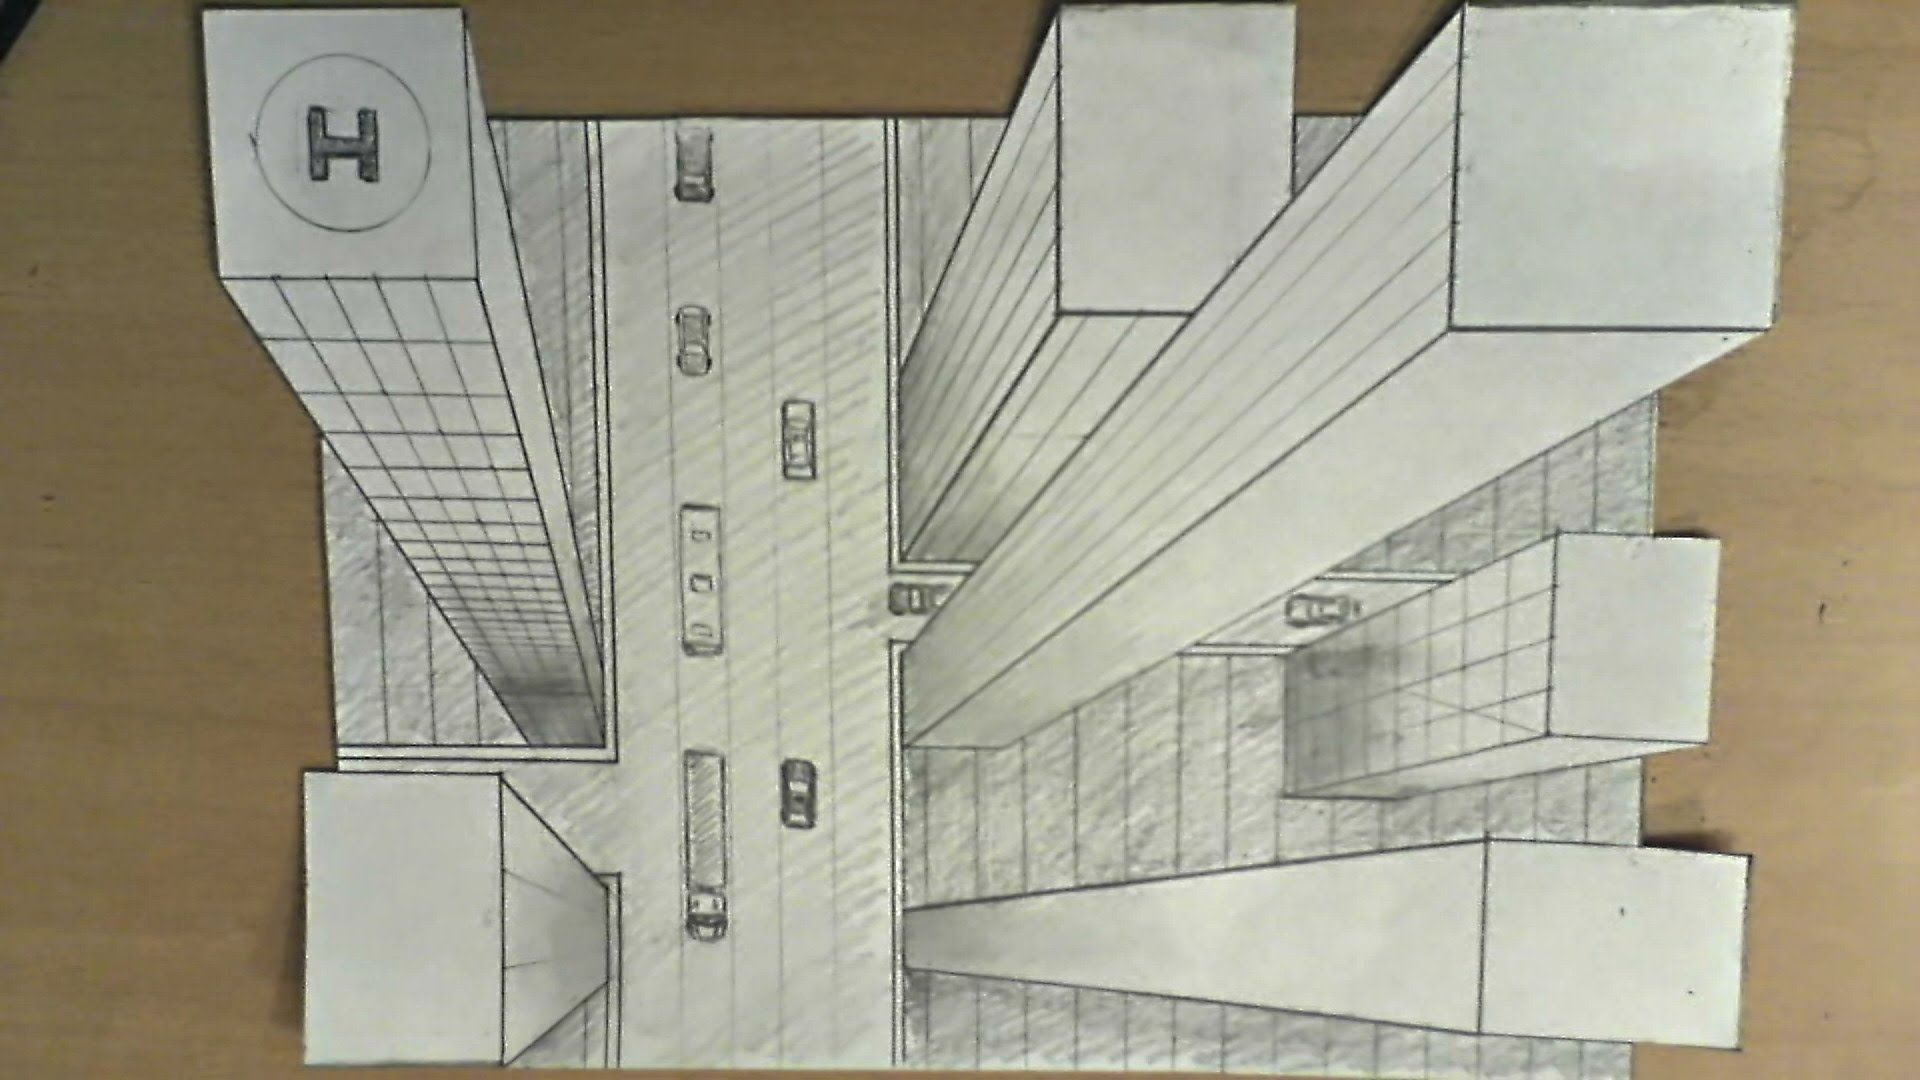 Drawn 3d art perspective High to illusion rise to